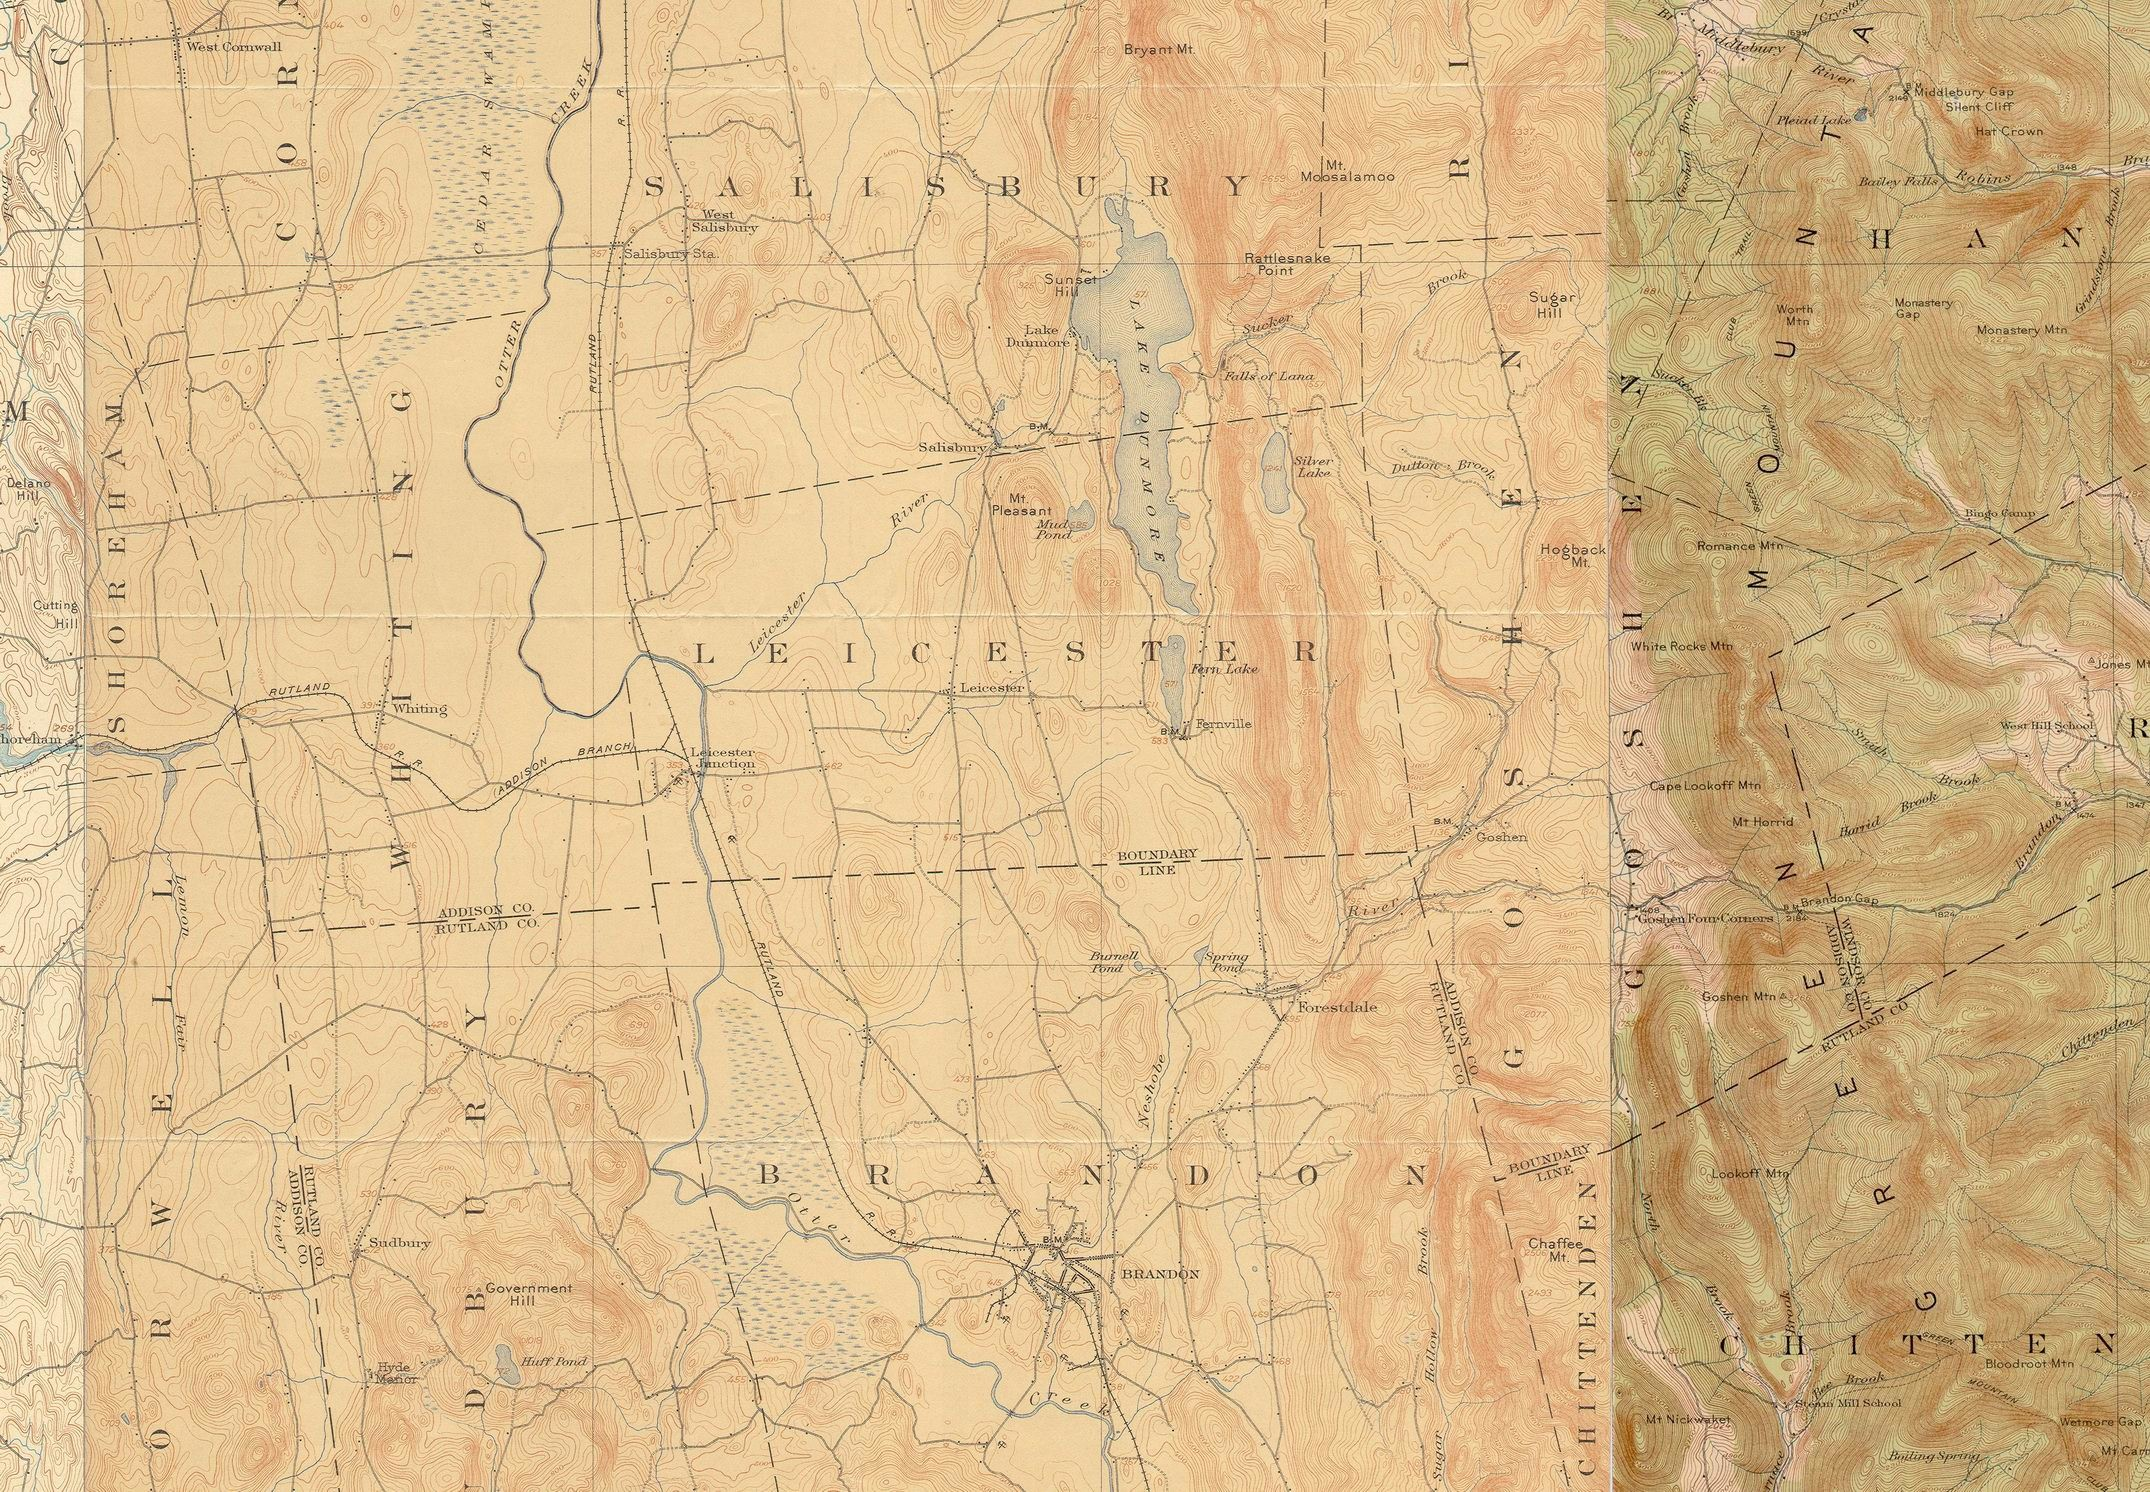 Old Map Background  C2 B7 E2 91 A0 Wallpapertag